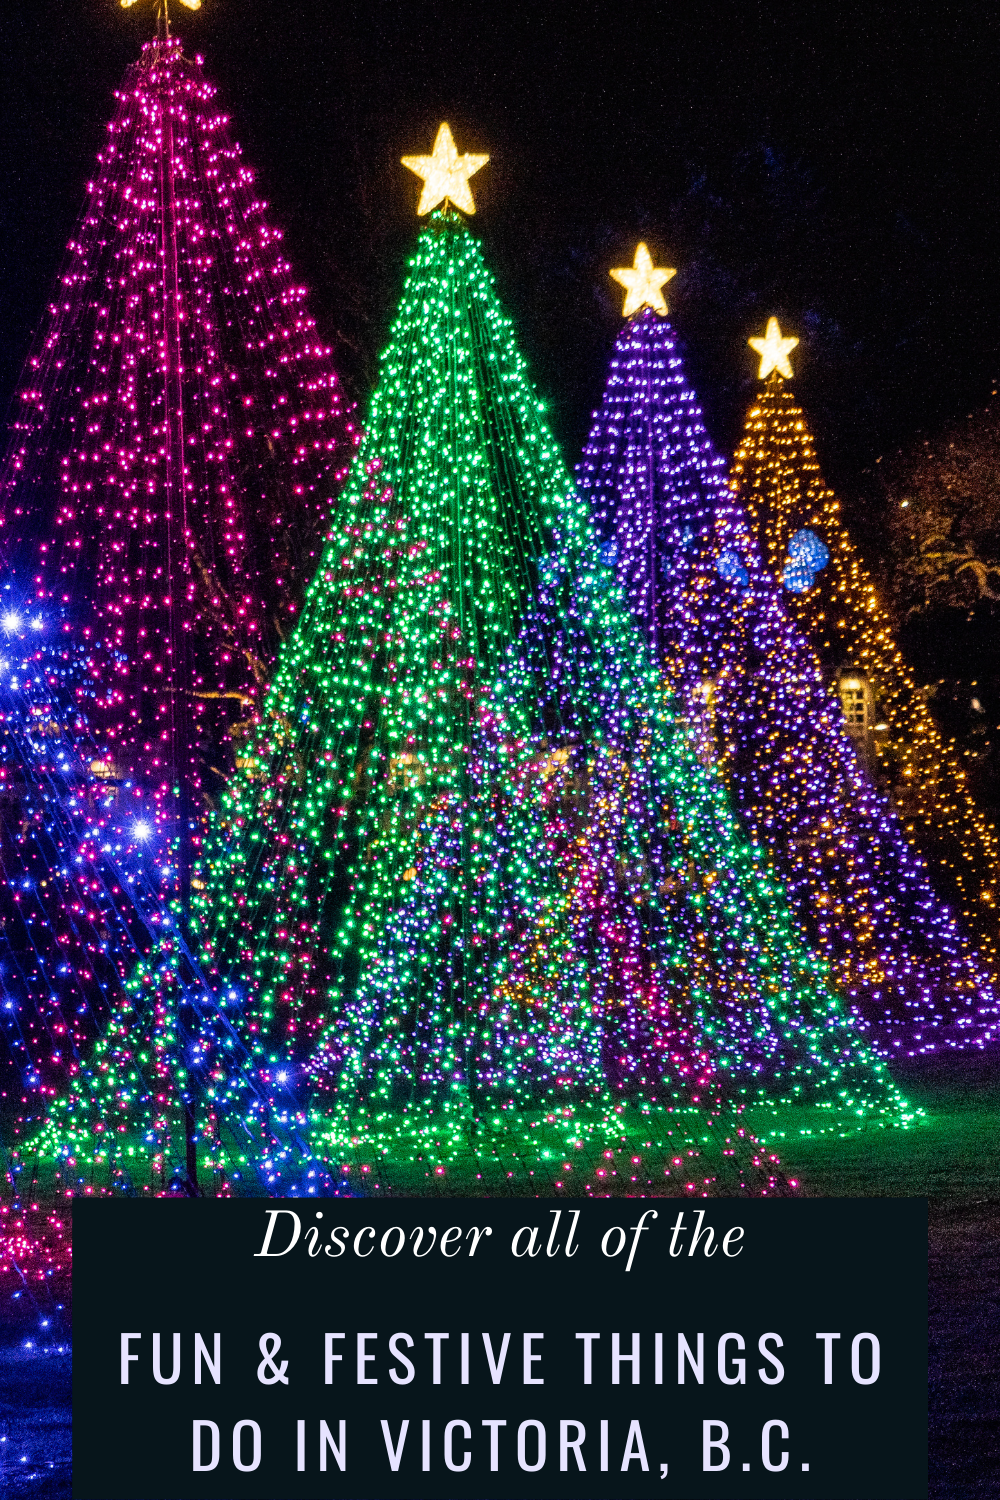 Victoria British Columbia S Capital City Sparkles During The Holiday Season Save This Local Gui In 2020 Luxury Family Travel Family Friendly Holidays Festive Travel